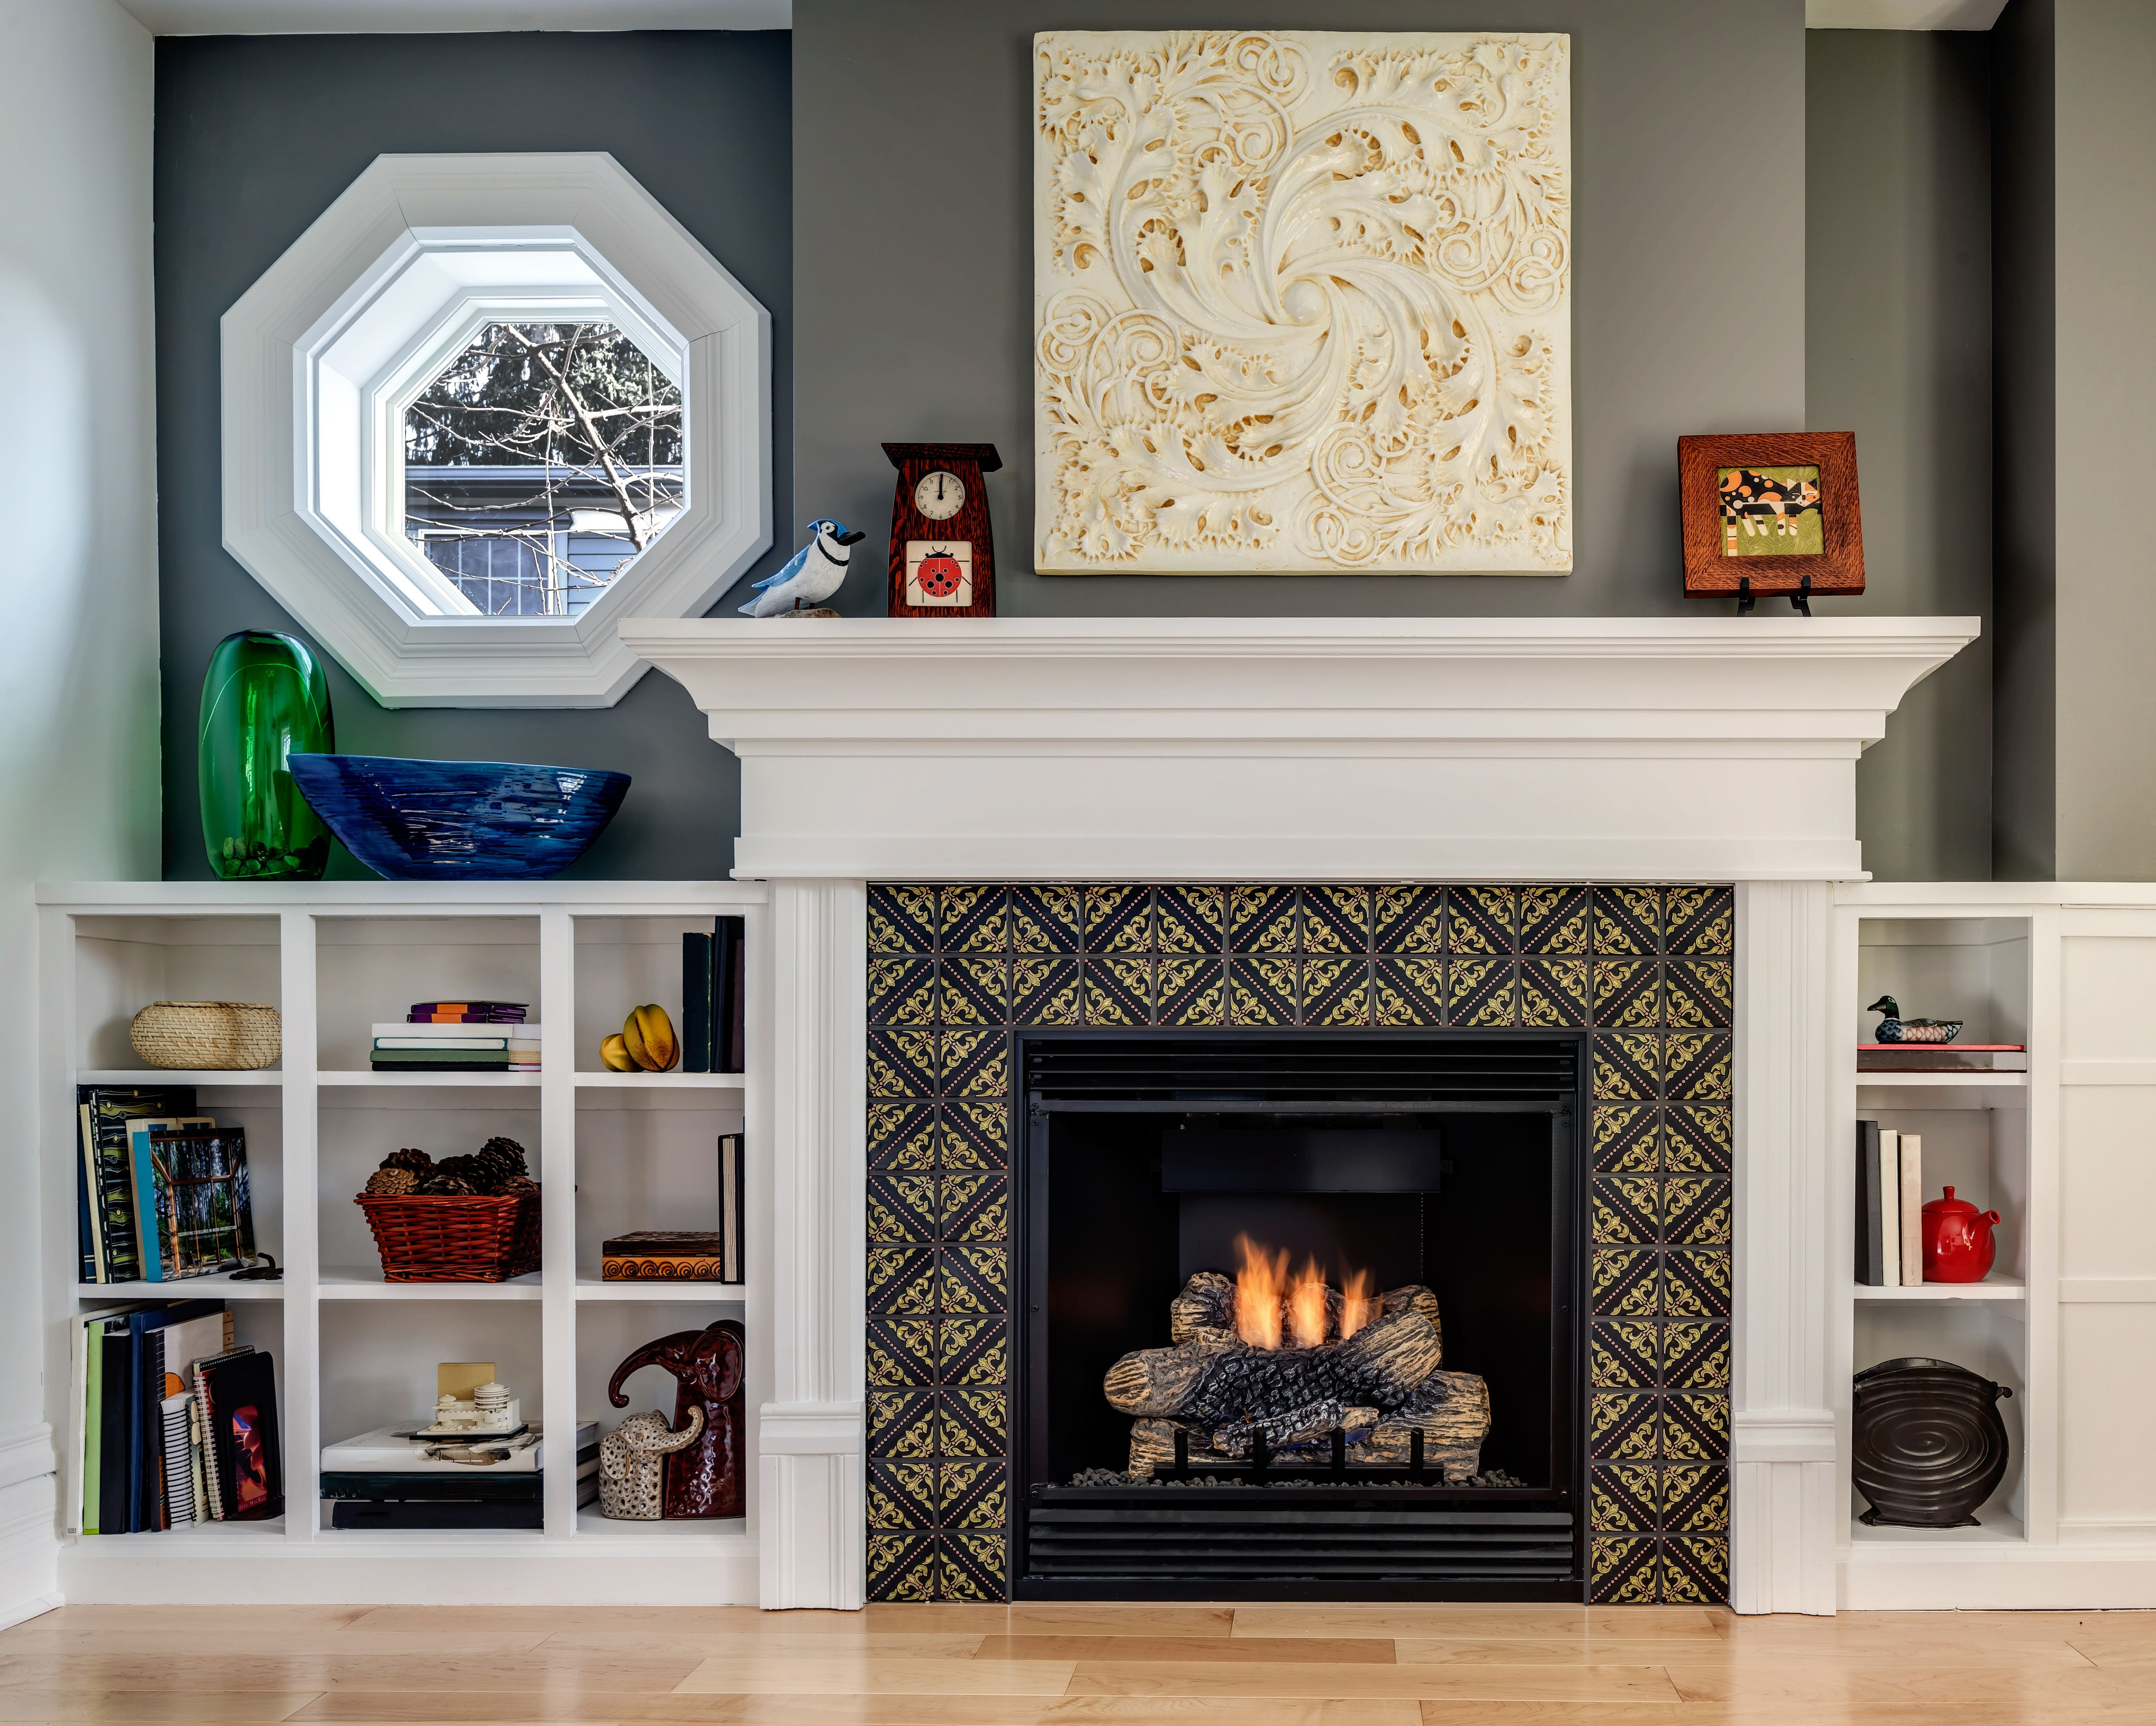 Decorative Tiles for Fireplace New This Small but Stylish Fireplace Features Our Lisbon Tile